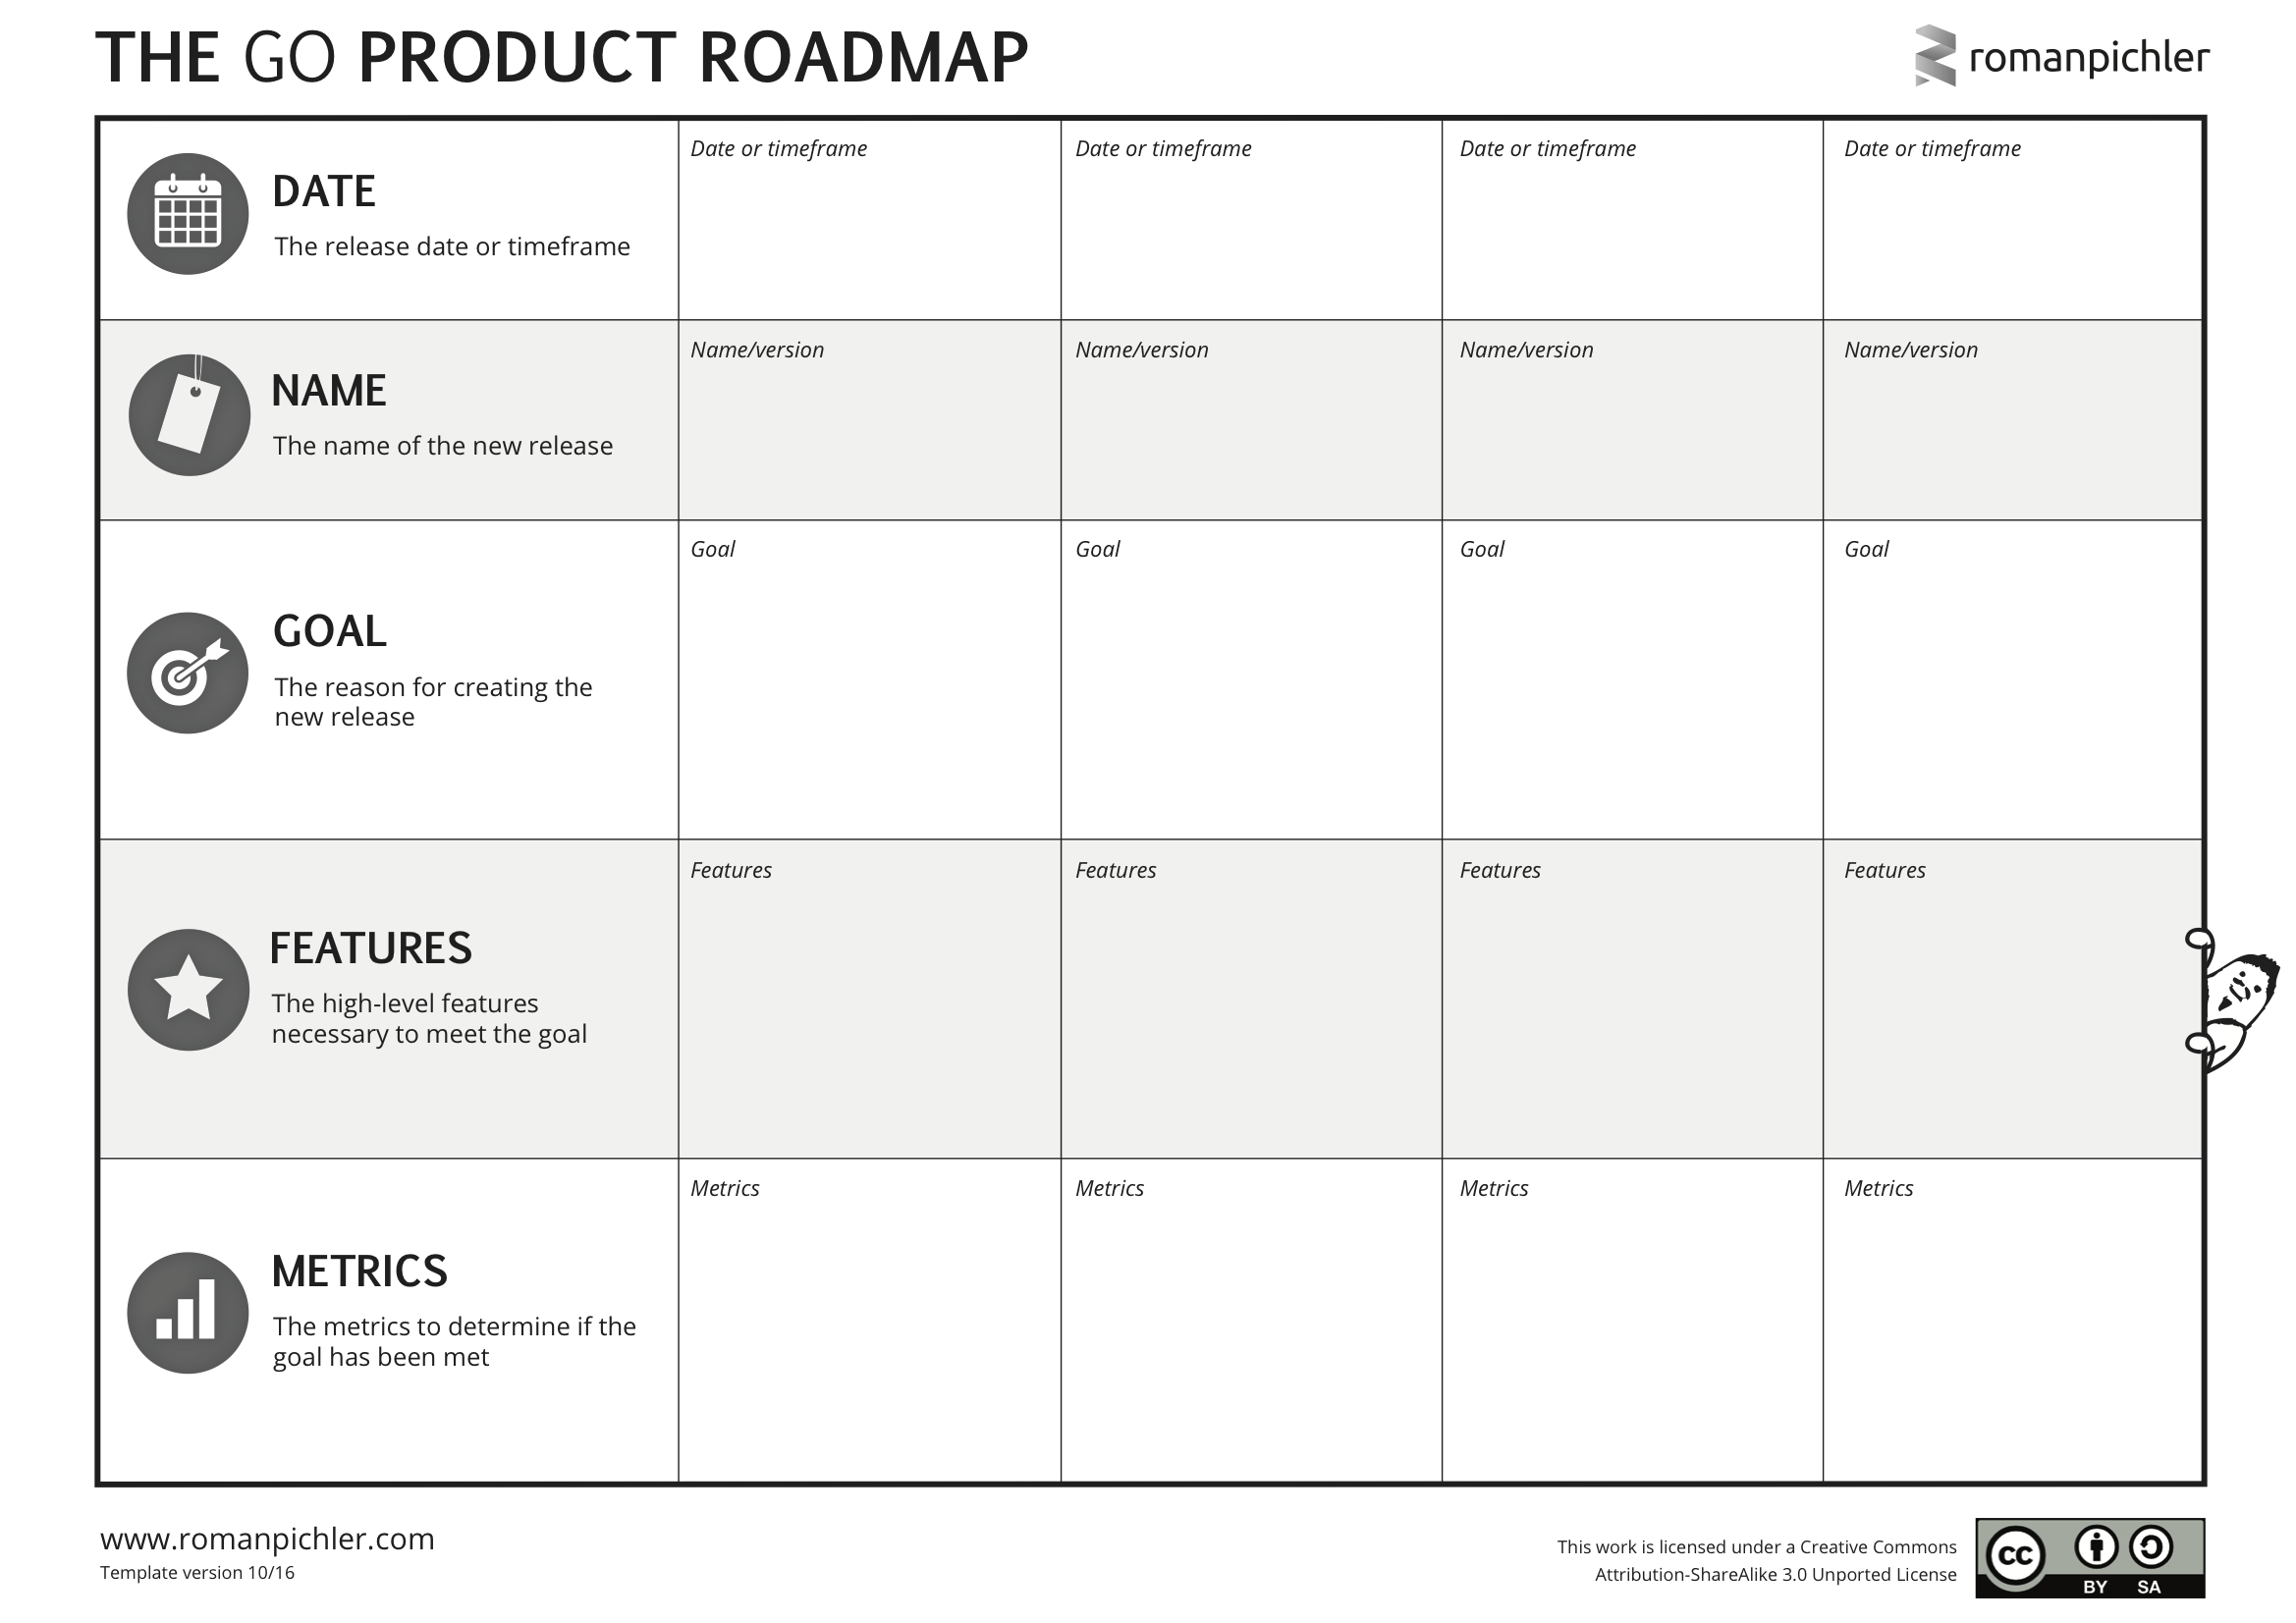 How To Choose The Right Product Roadmap Format